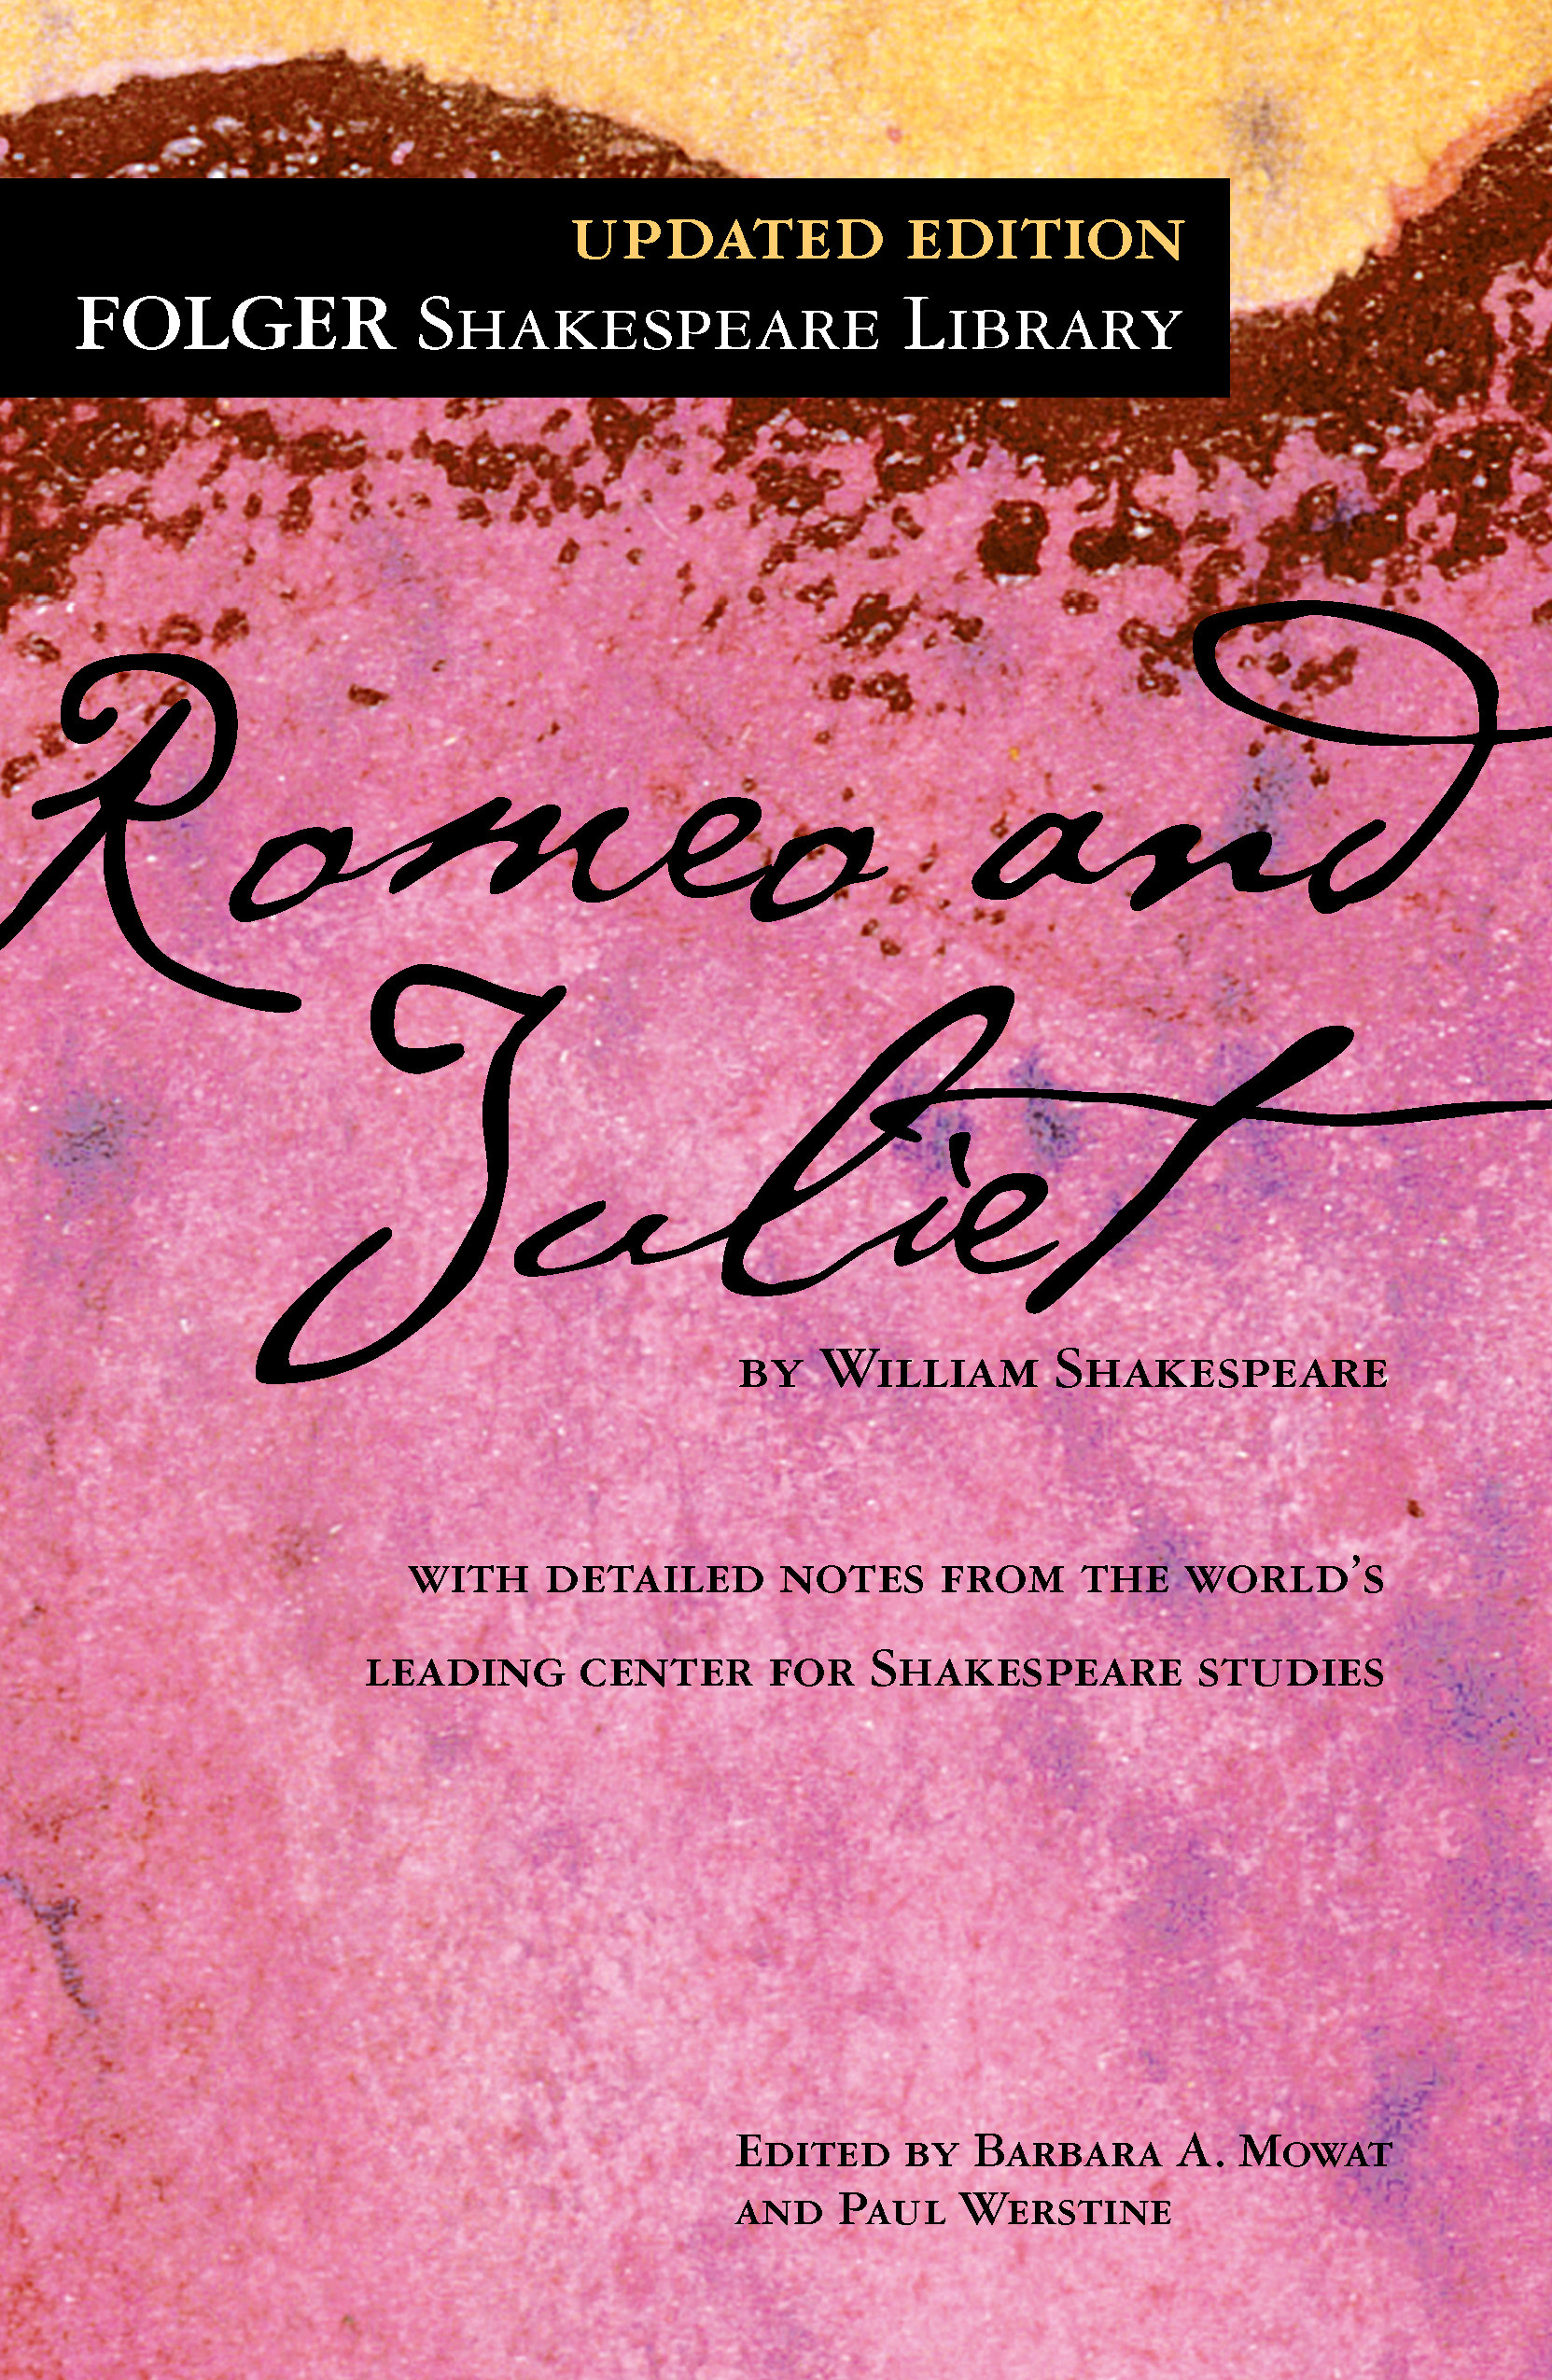 The book cover for Romeo and Juliet